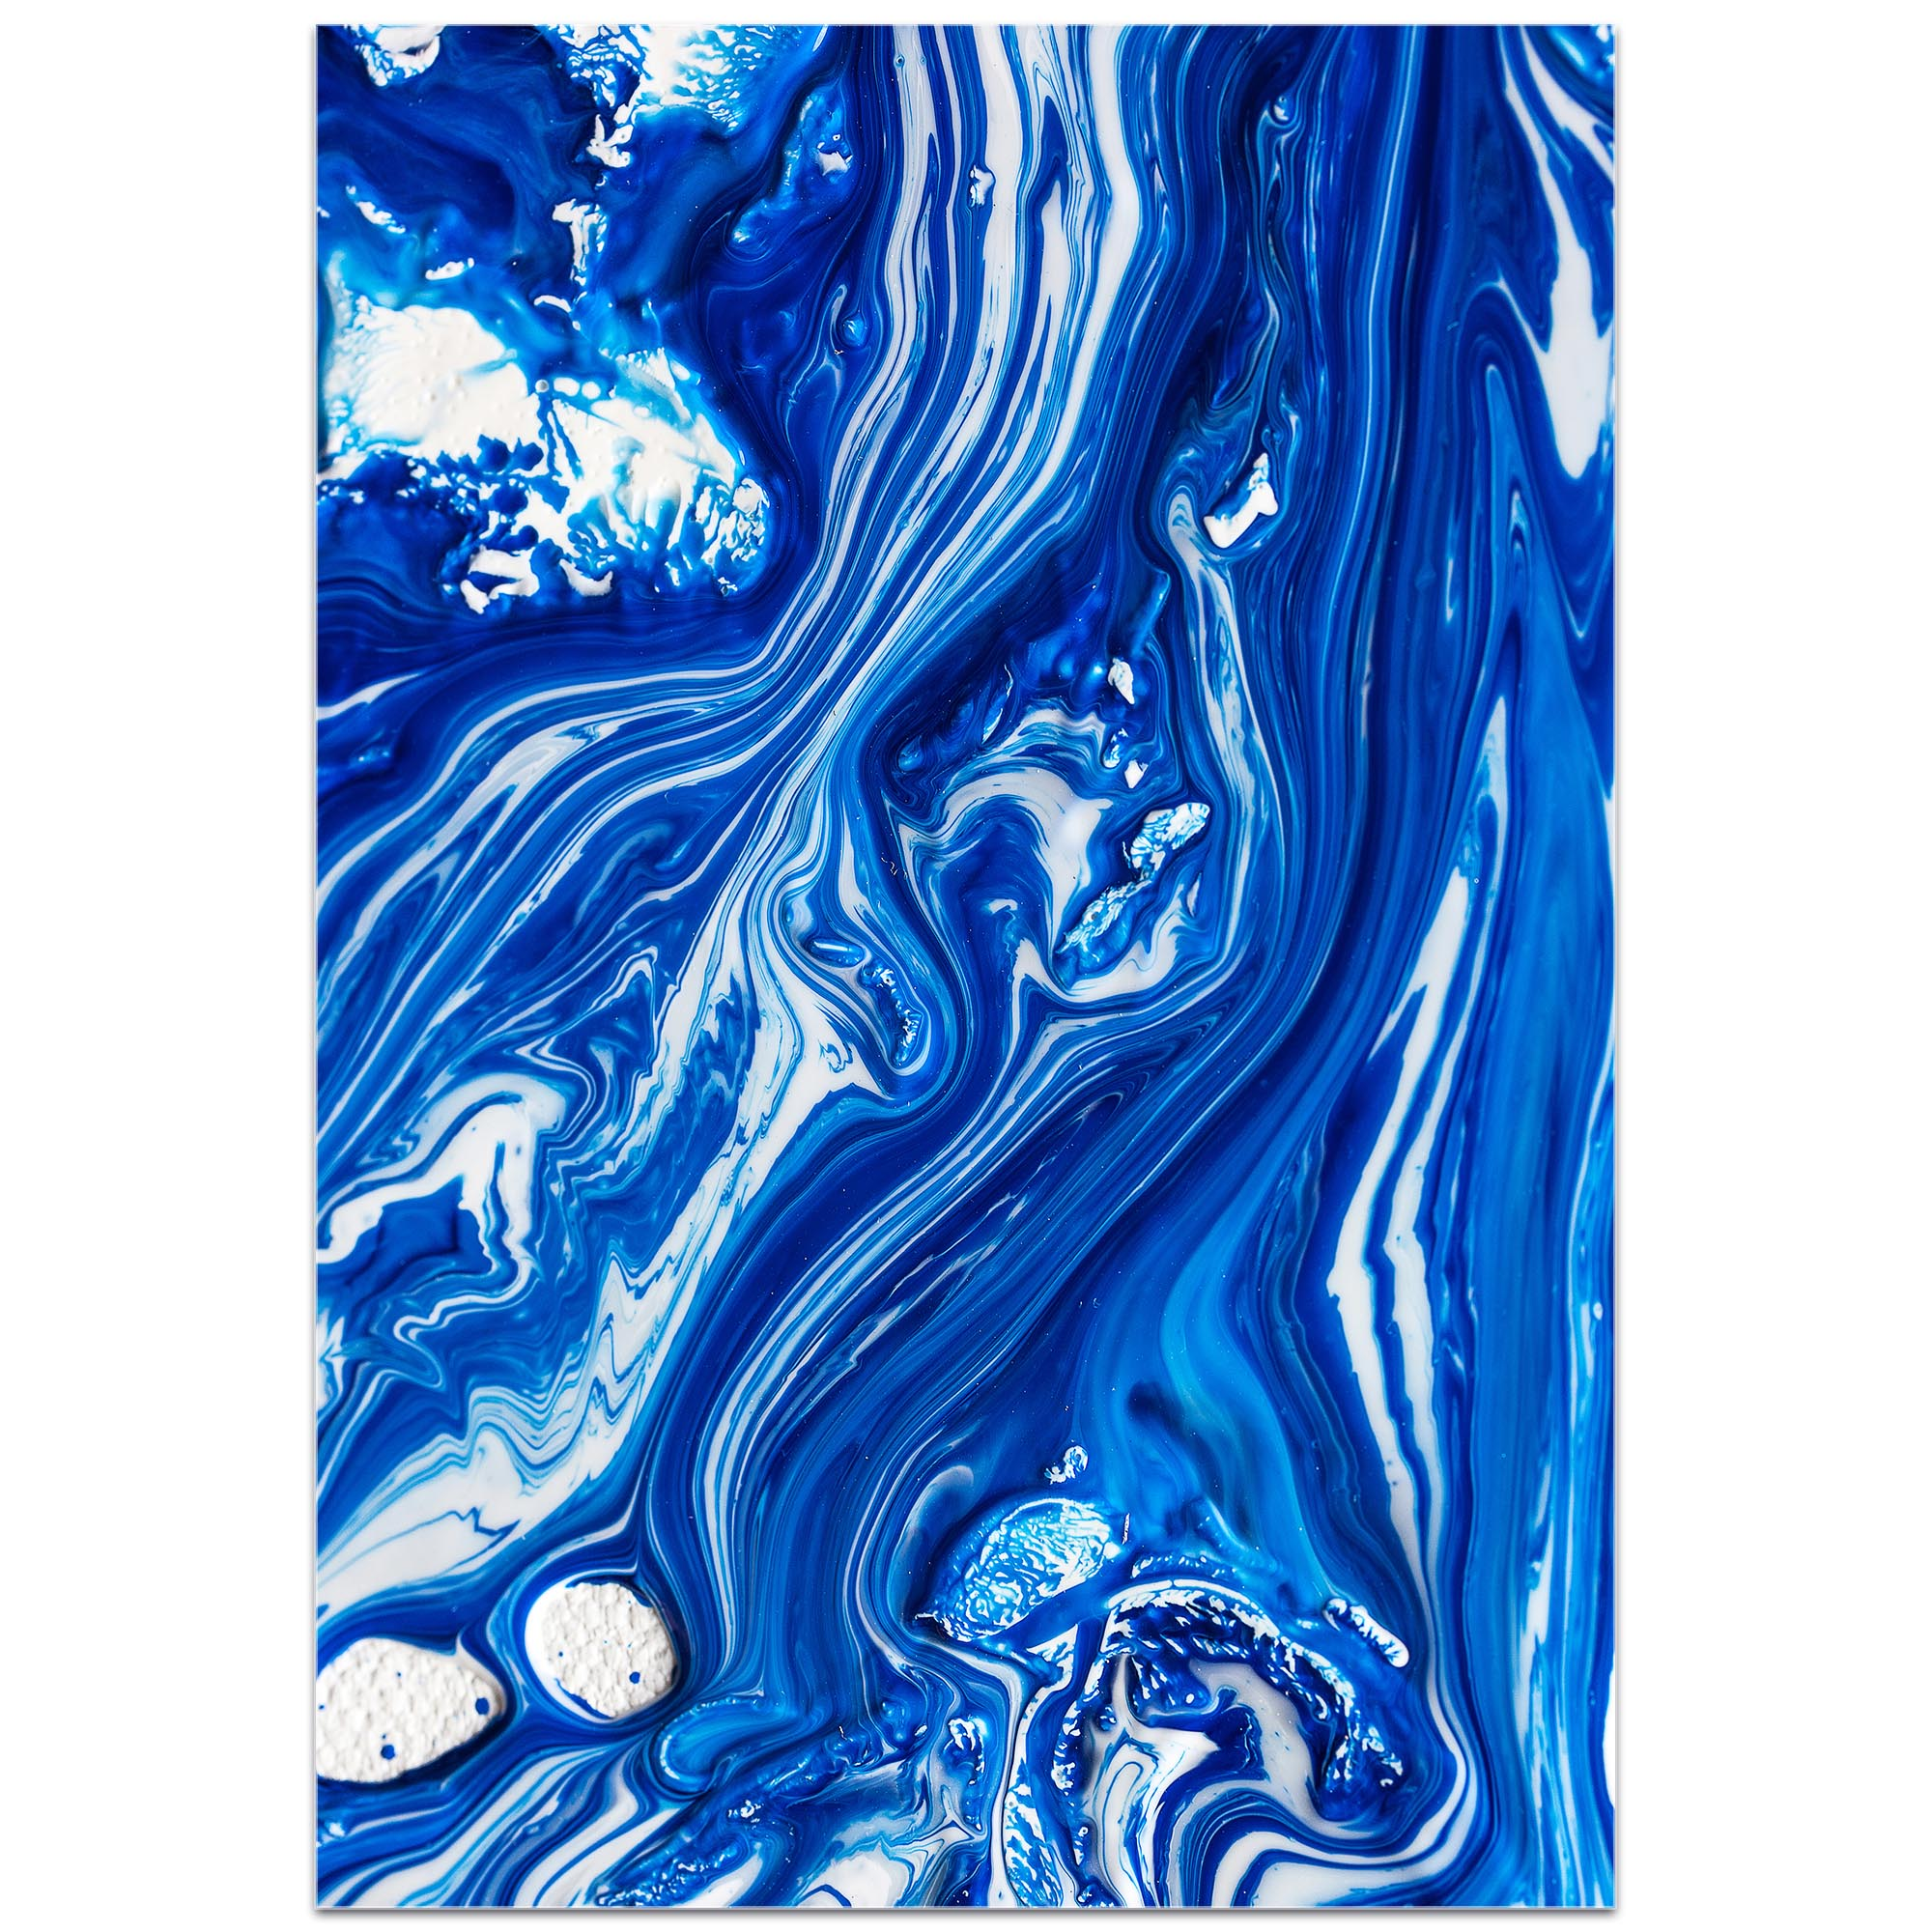 Abstract Wall Art 'Coastal Waters 6' - Colorful Urban Decor on Metal or Plexiglass - Image 2